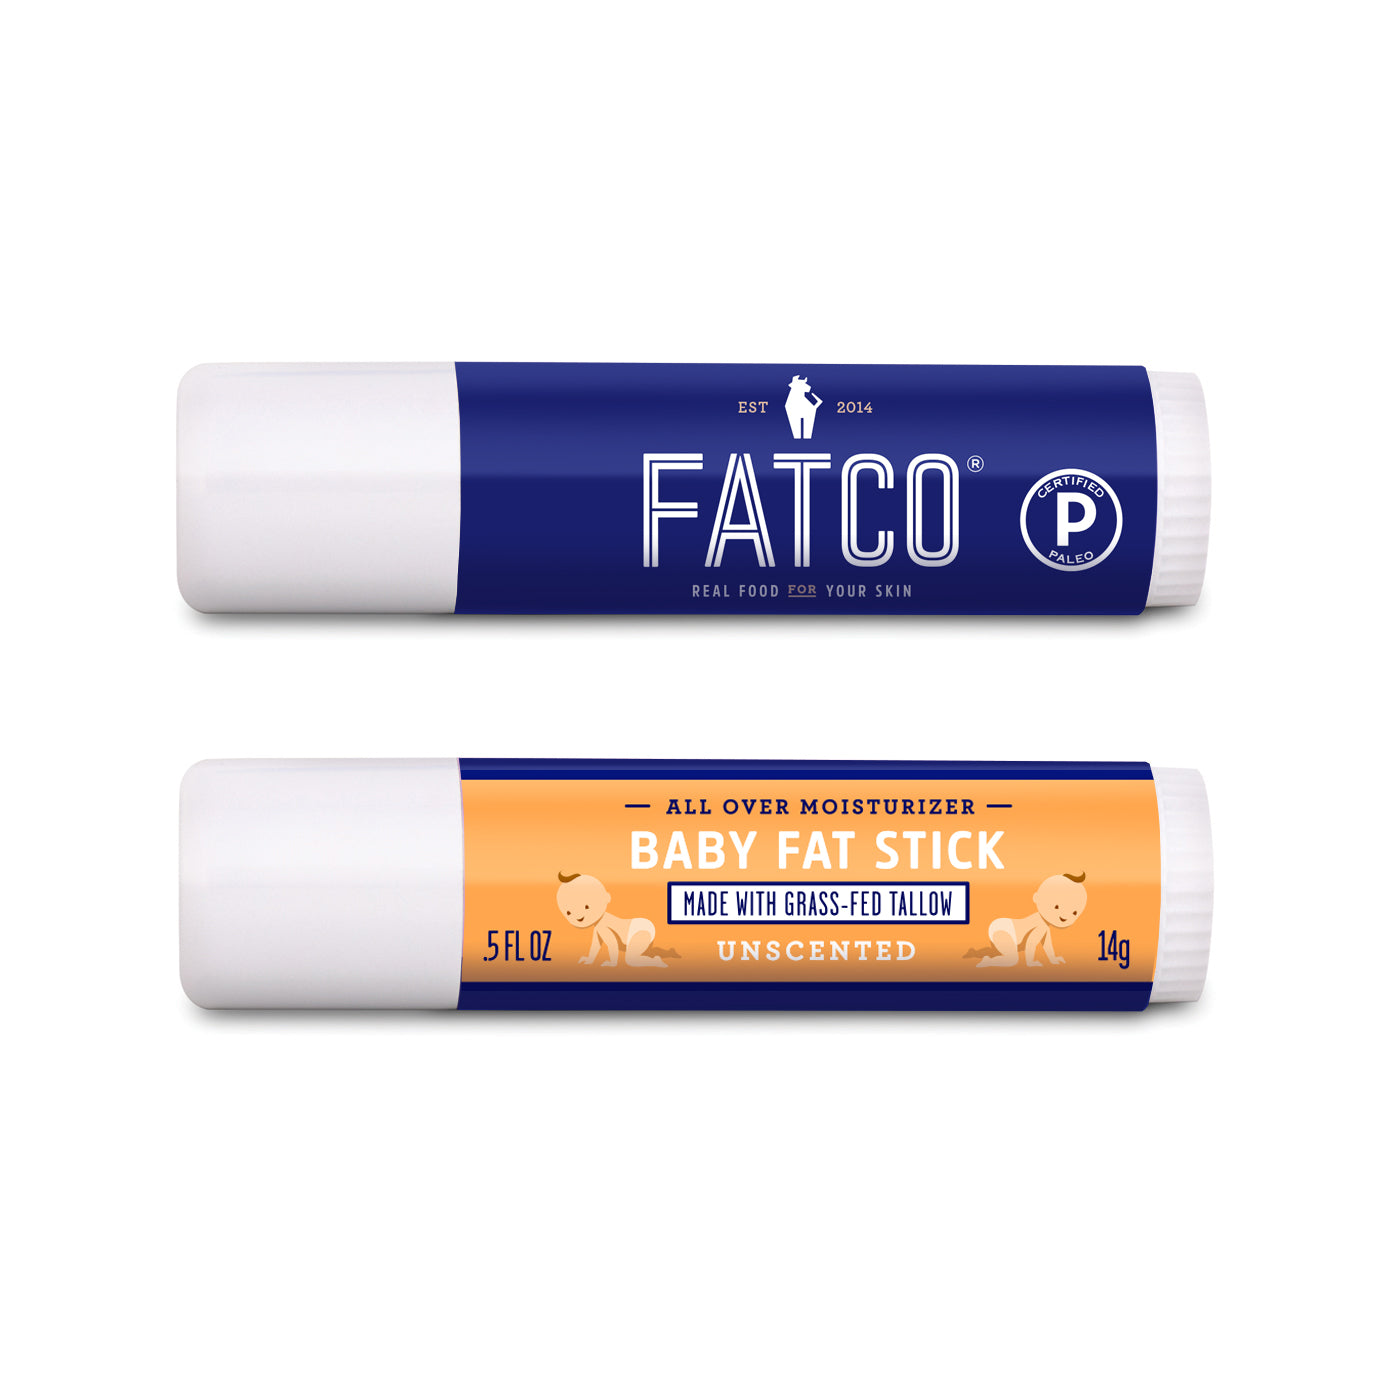 BABY FAT STICK, Unscented, 0.5 OZ-FATCO Skincare Products tallow balm moisturizer diaper rash paleo skincare cradle cap